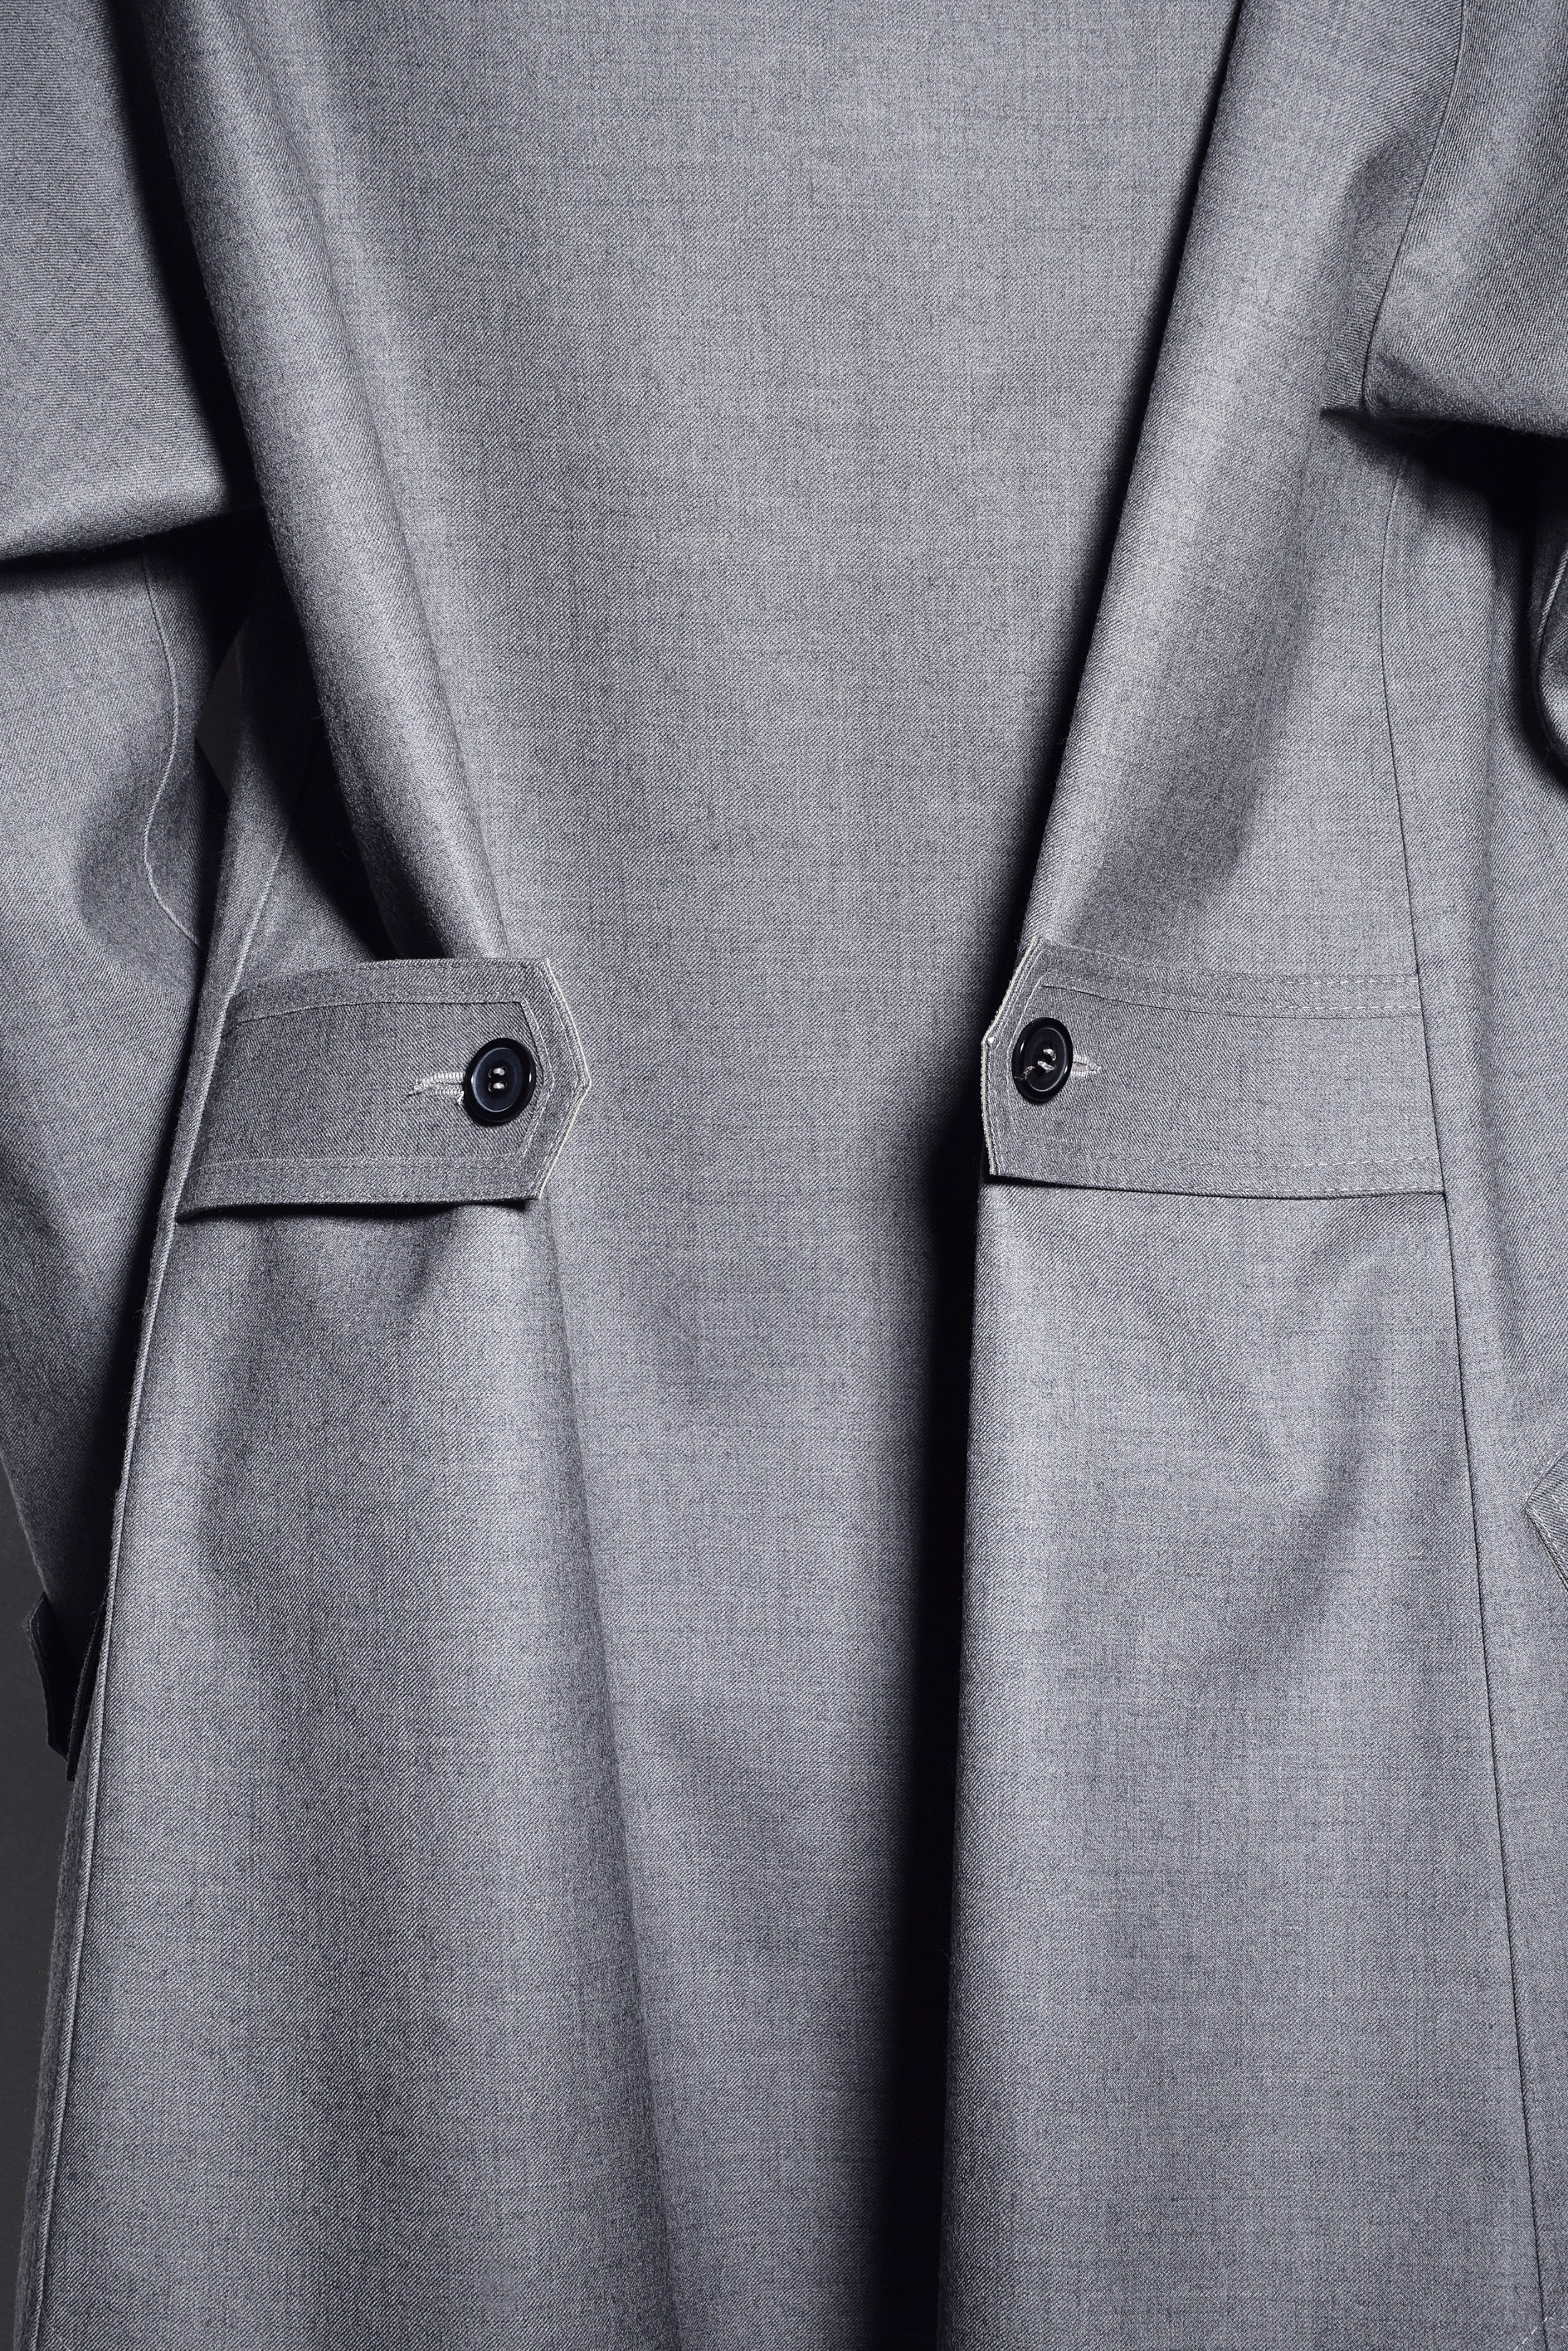 Introducing MACKINTOSH and Maison Margiela's Two Exclusive Trench Coats